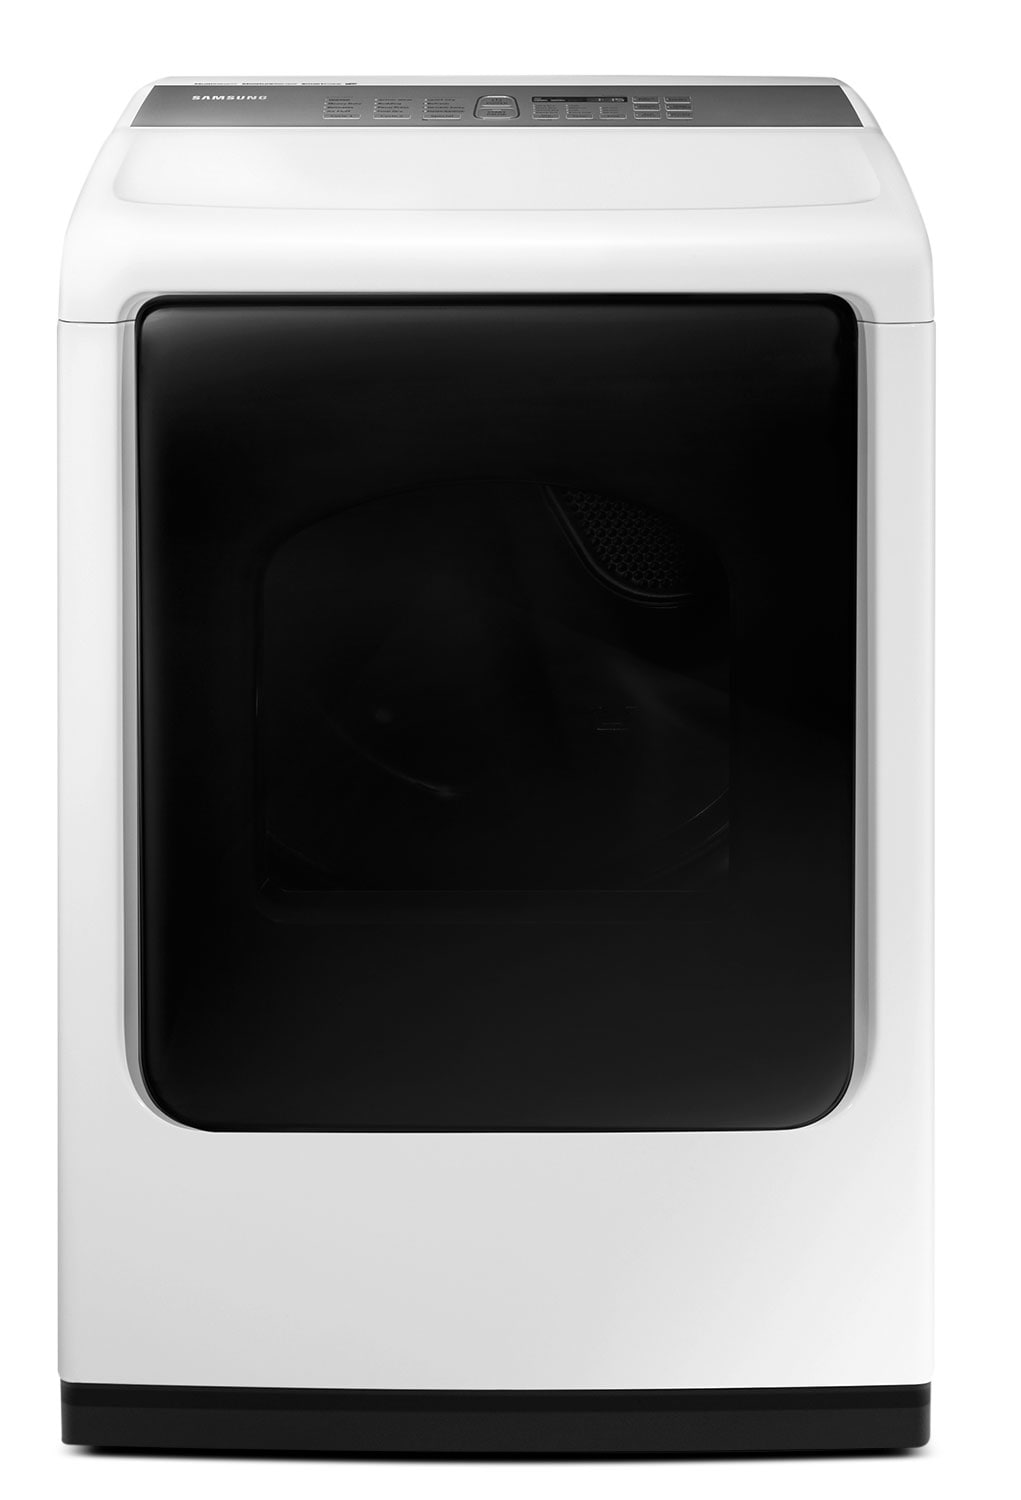 Washers and Dryers - Samsung 7.4 Cu. Ft. Electric Dryer – DV45K7600EW/AC